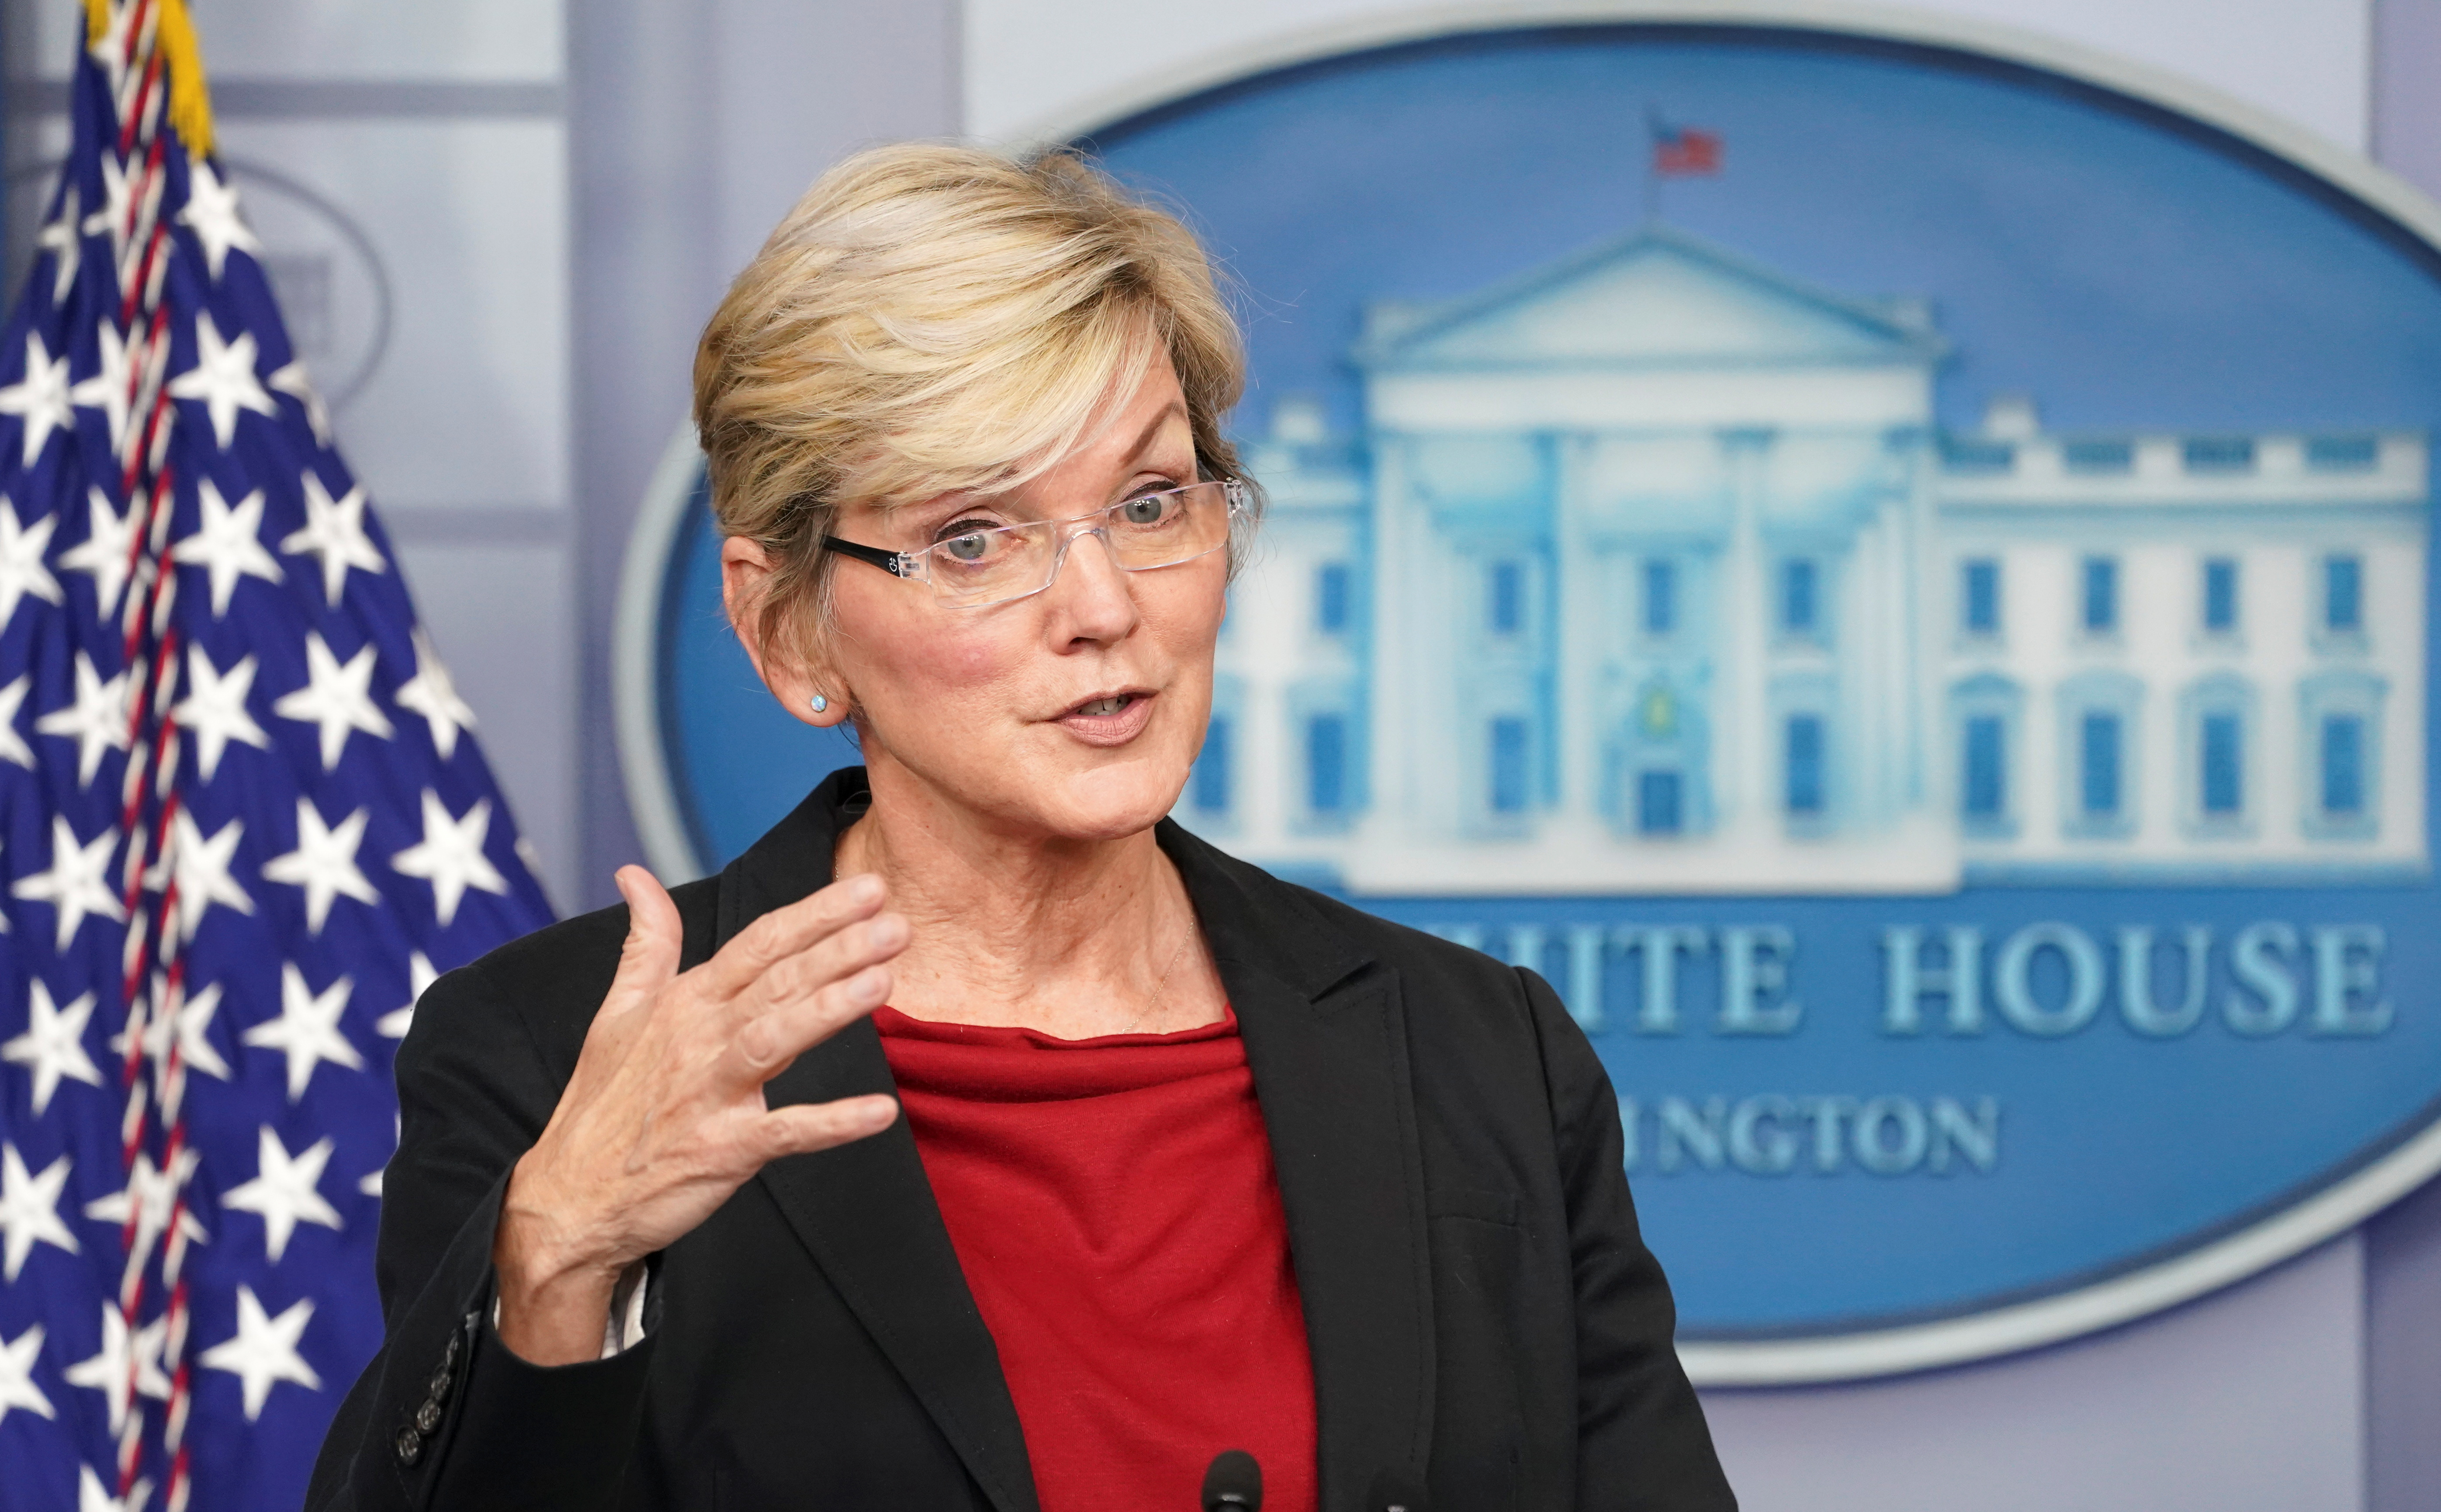 U.S. Secretary of Energy Jennifer Granholm speaks during a press briefing at the White House in Washington, U.S., April 8, 2021. REUTERS/Kevin Lamarque/File Photo